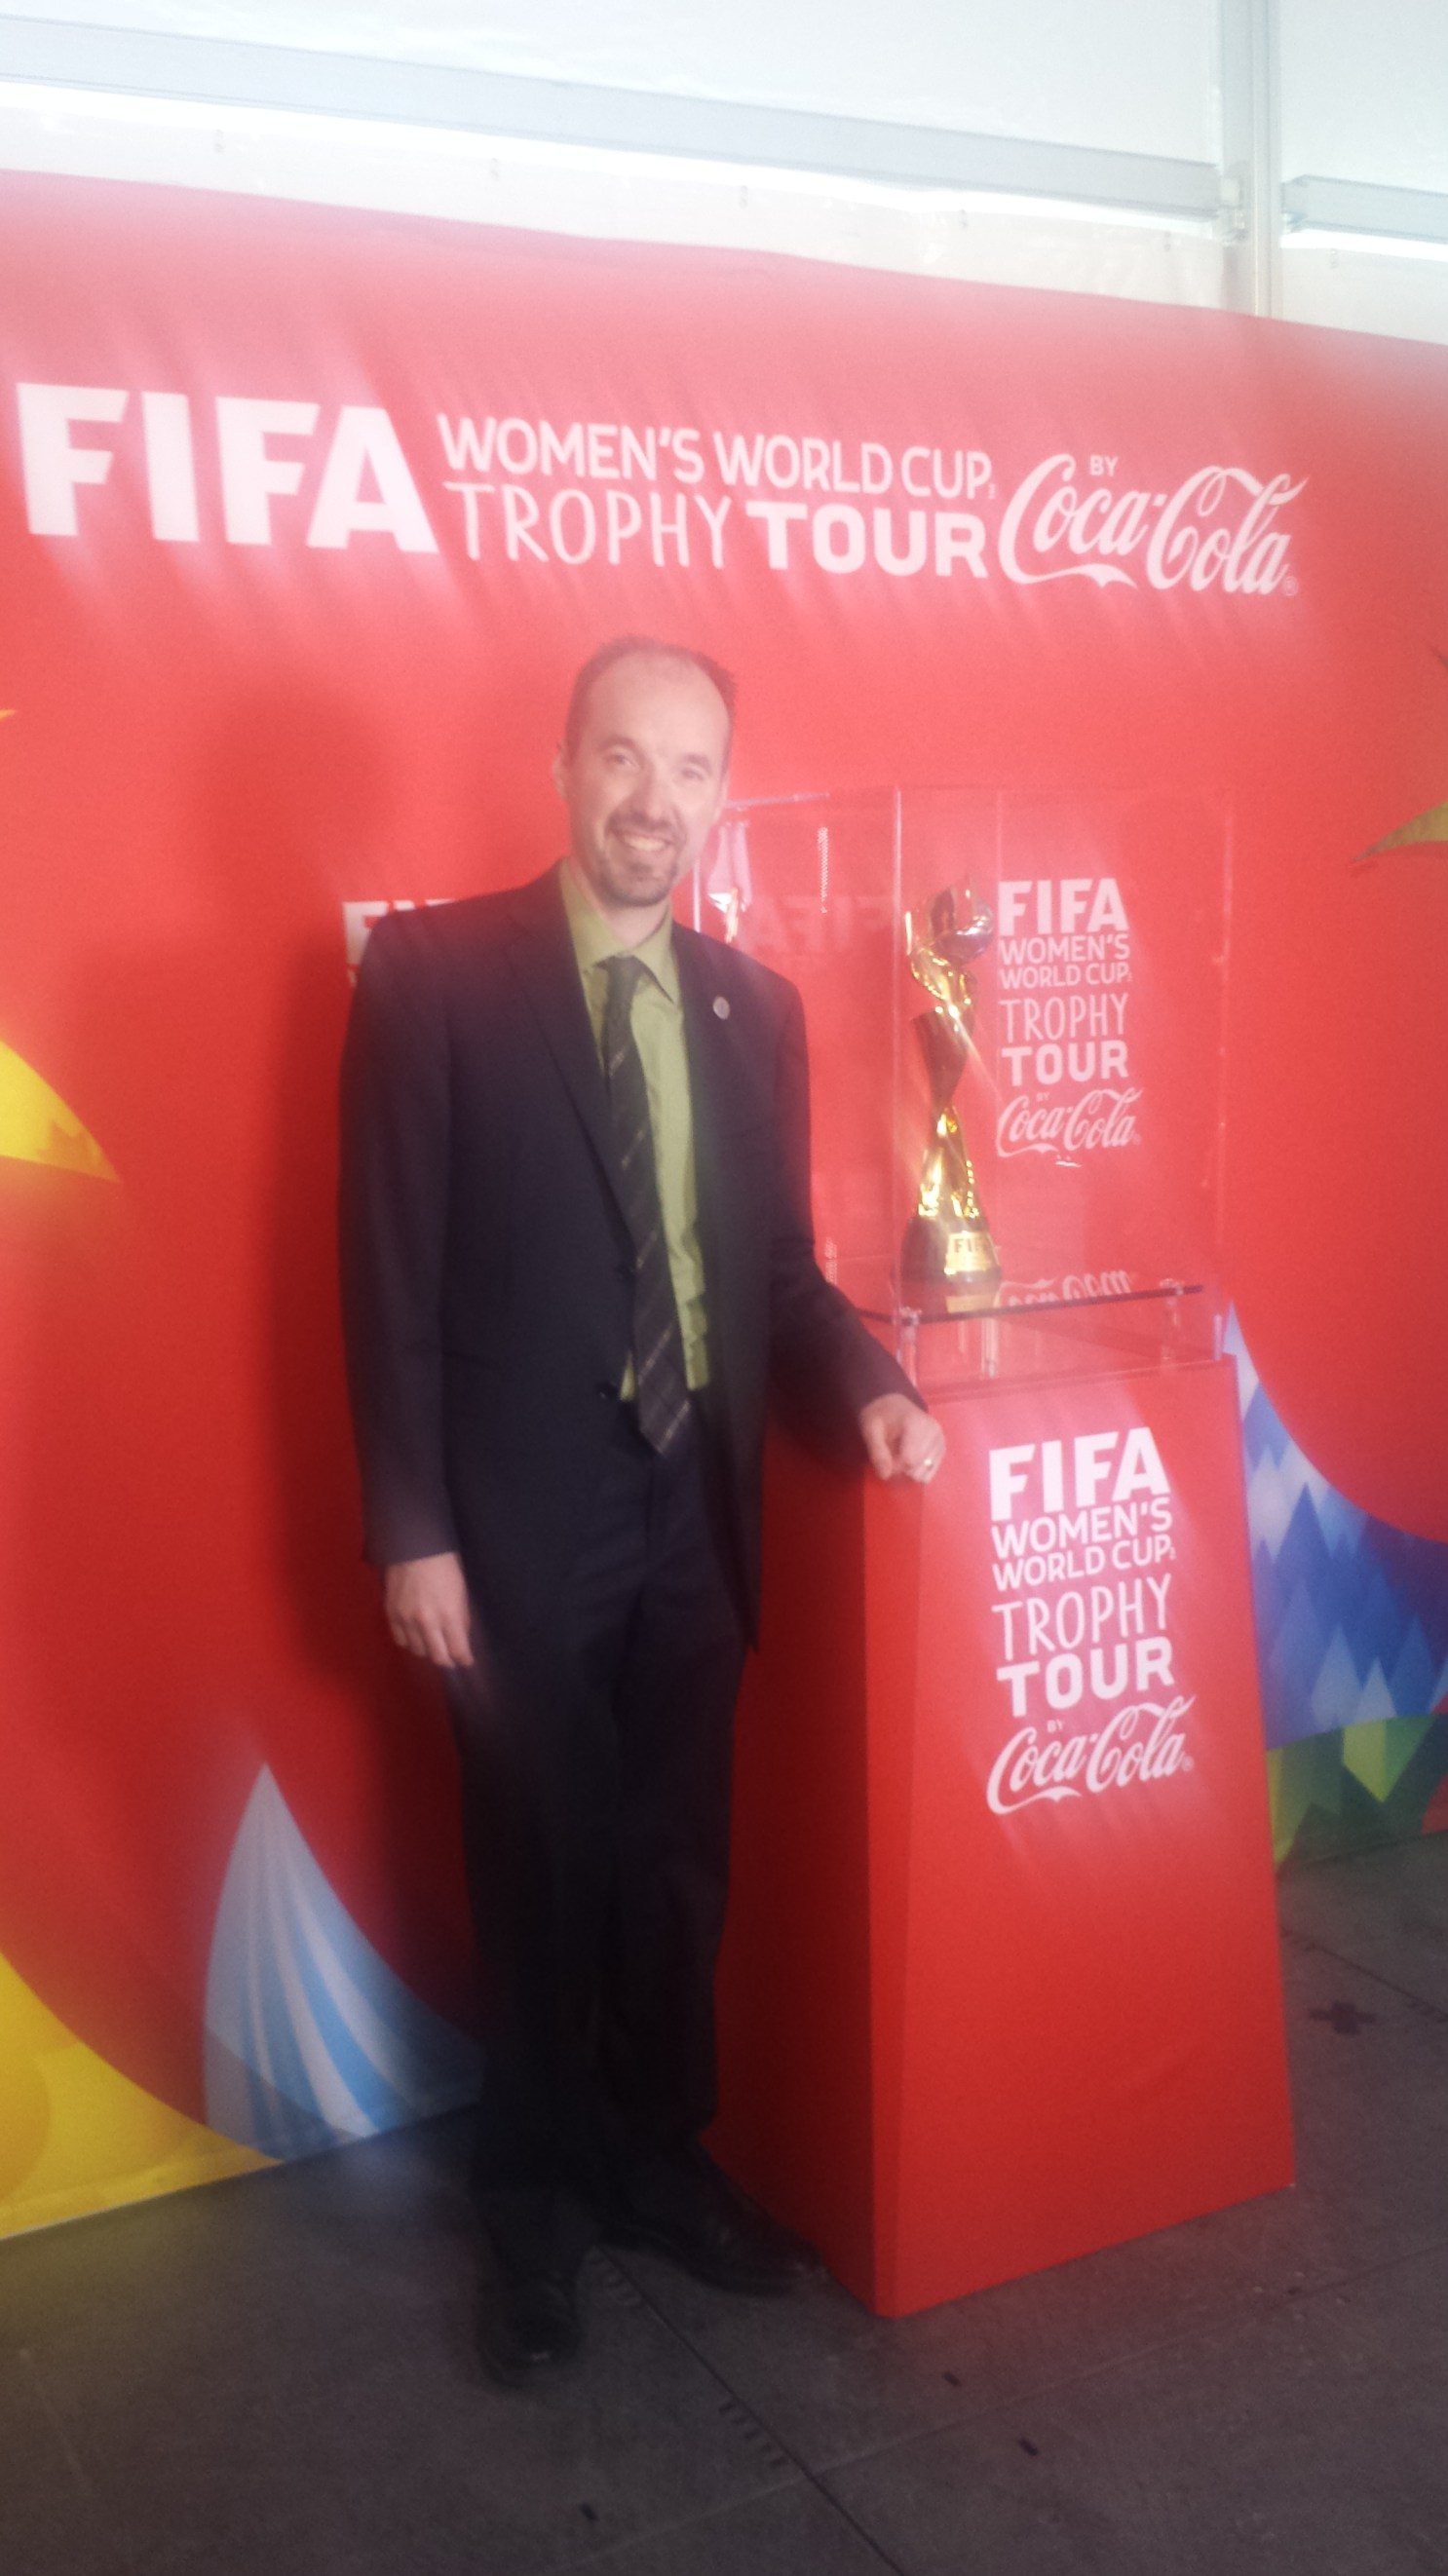 Snapped a picture with the FIFA Women's World Cup when it came through Kingston - April 28